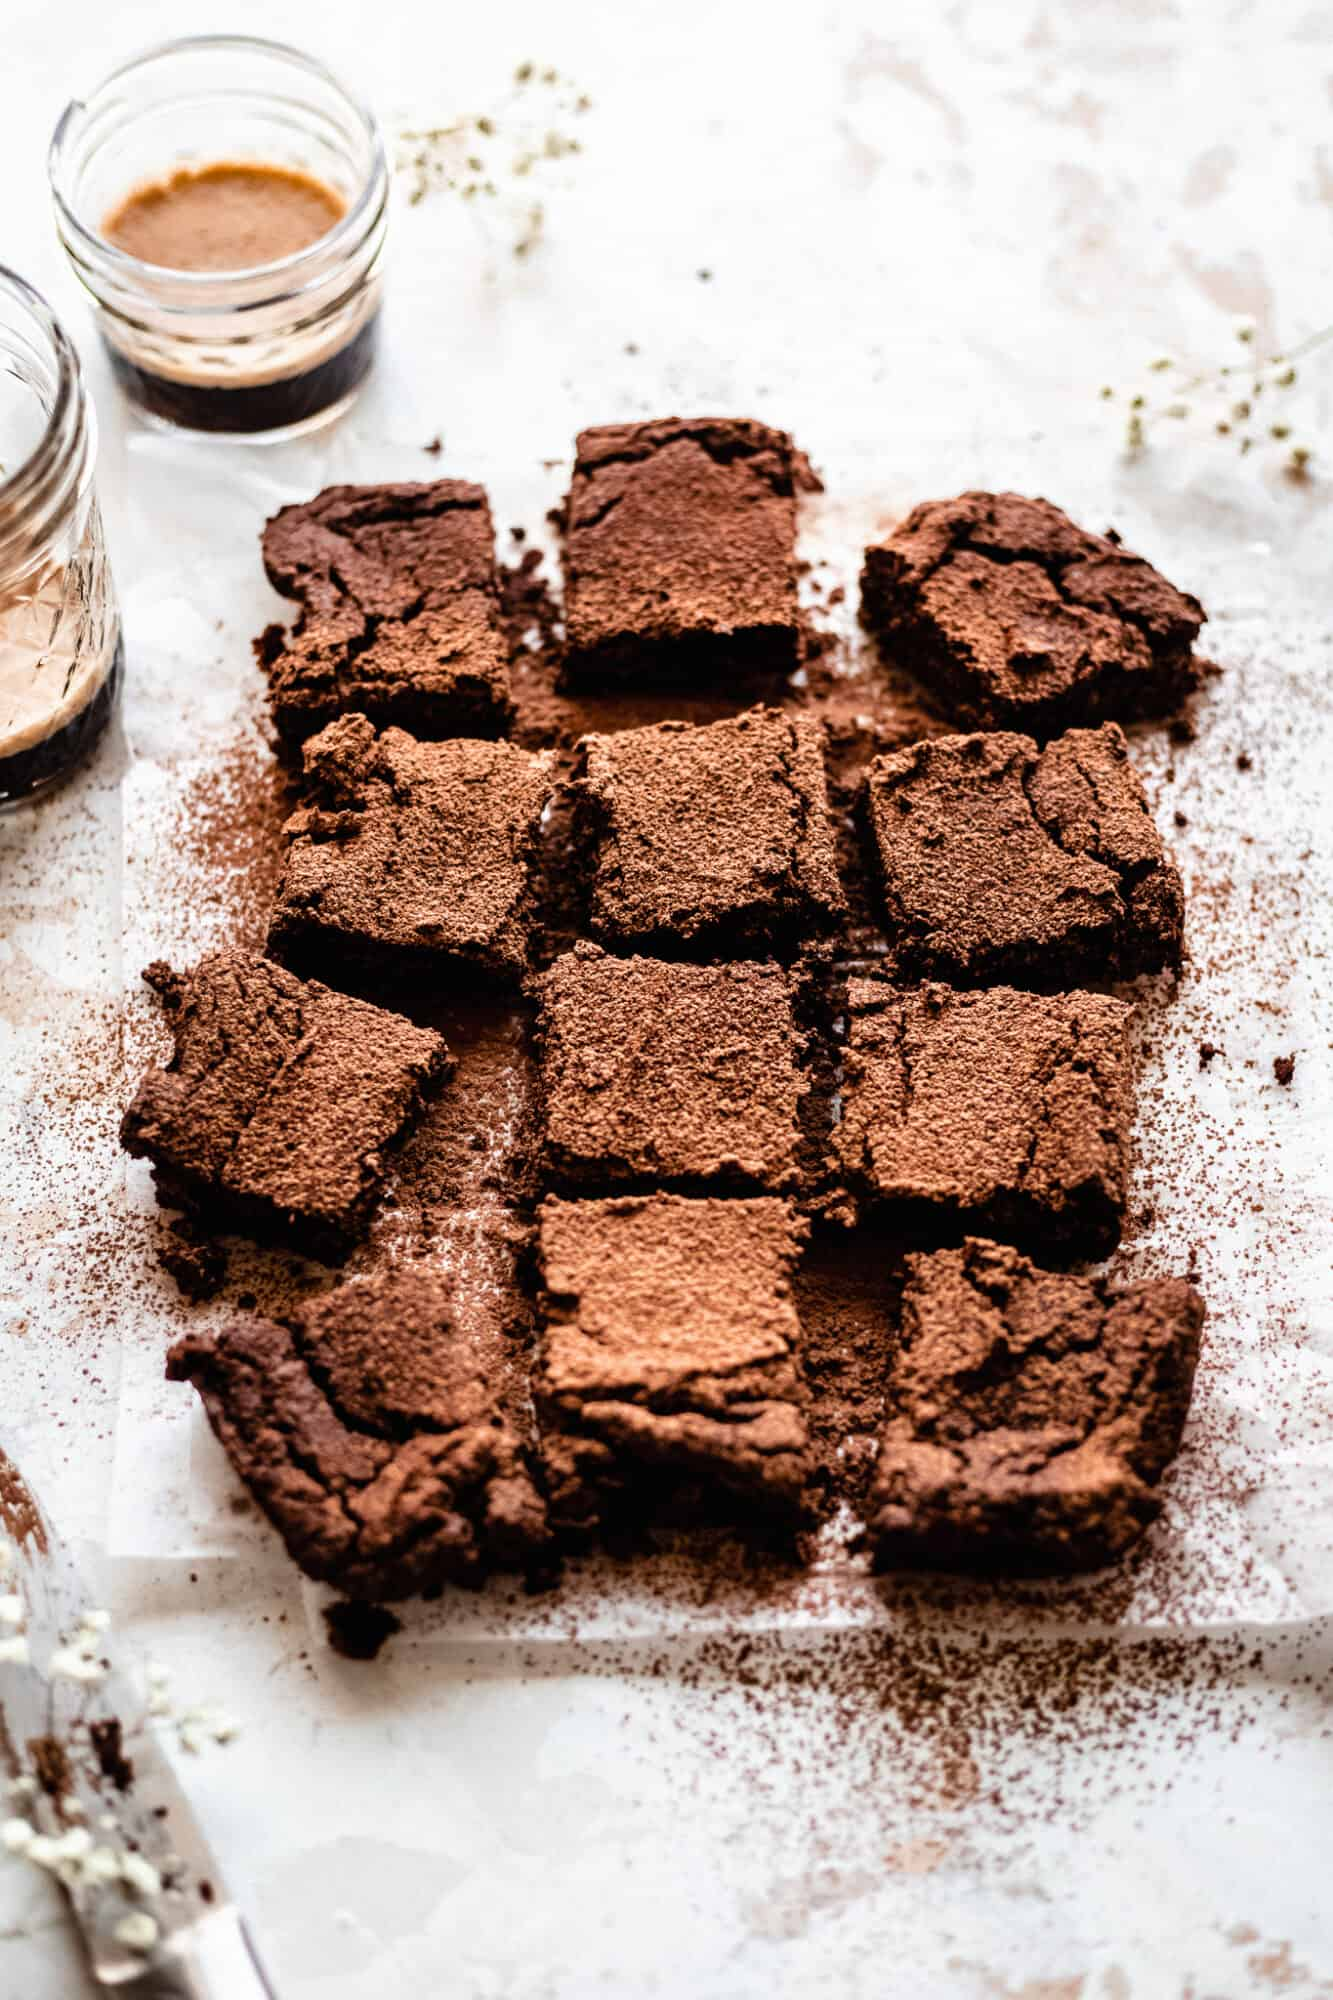 parchment paper lined chickpea brownies